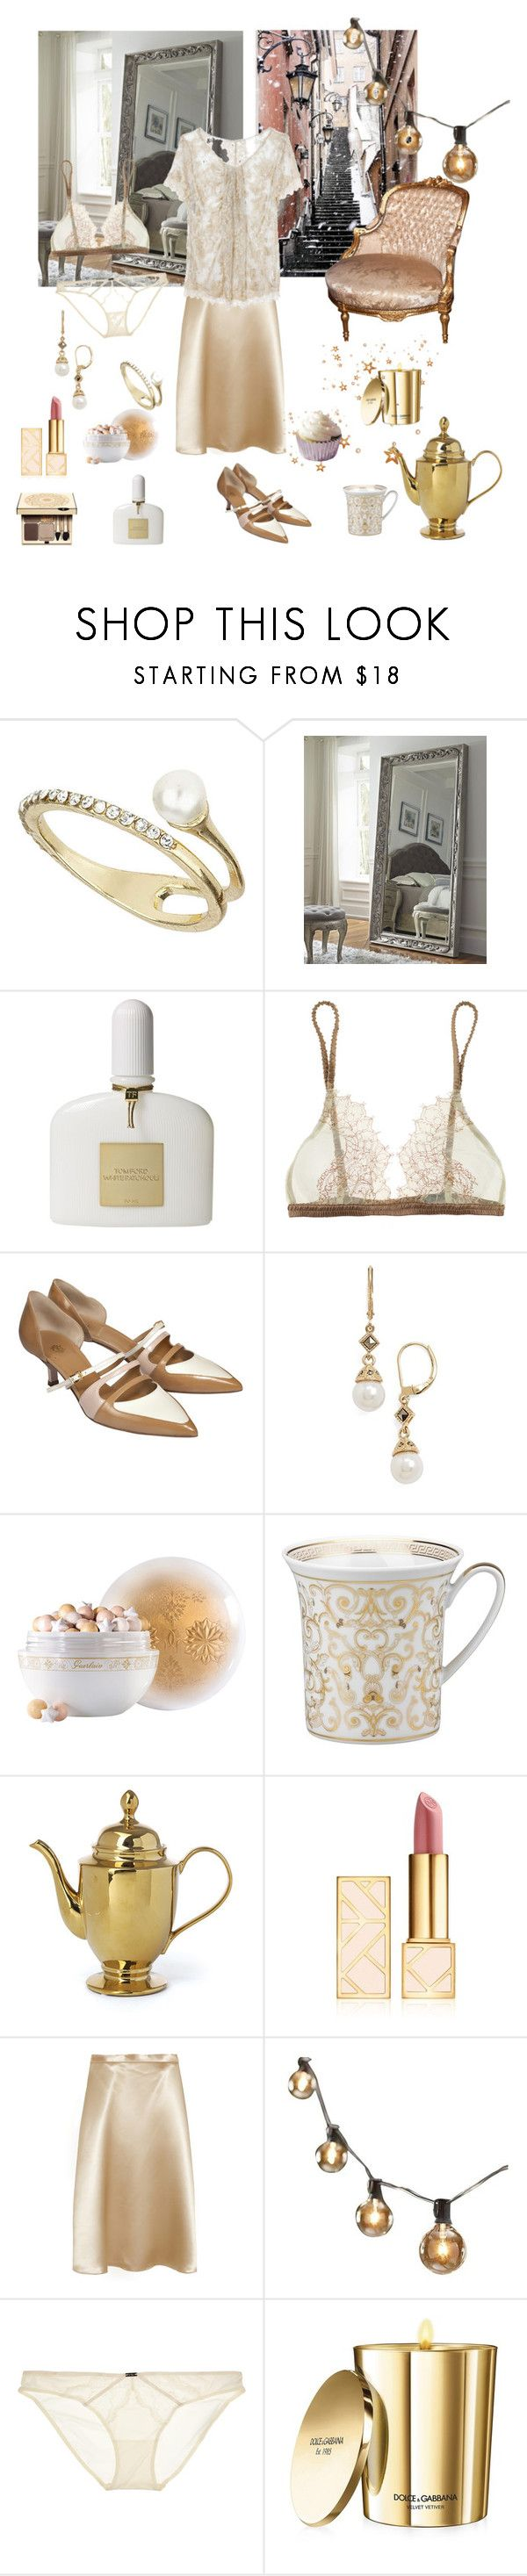 """Waiting for Santa"" by nathalie-puex ❤ liked on Polyvore featuring Topshop, Tom Ford, La Fée Verte, De Siena, Clarins, Judith Jack, Guerlain, Versace, Tory Burch and Christopher Kane"